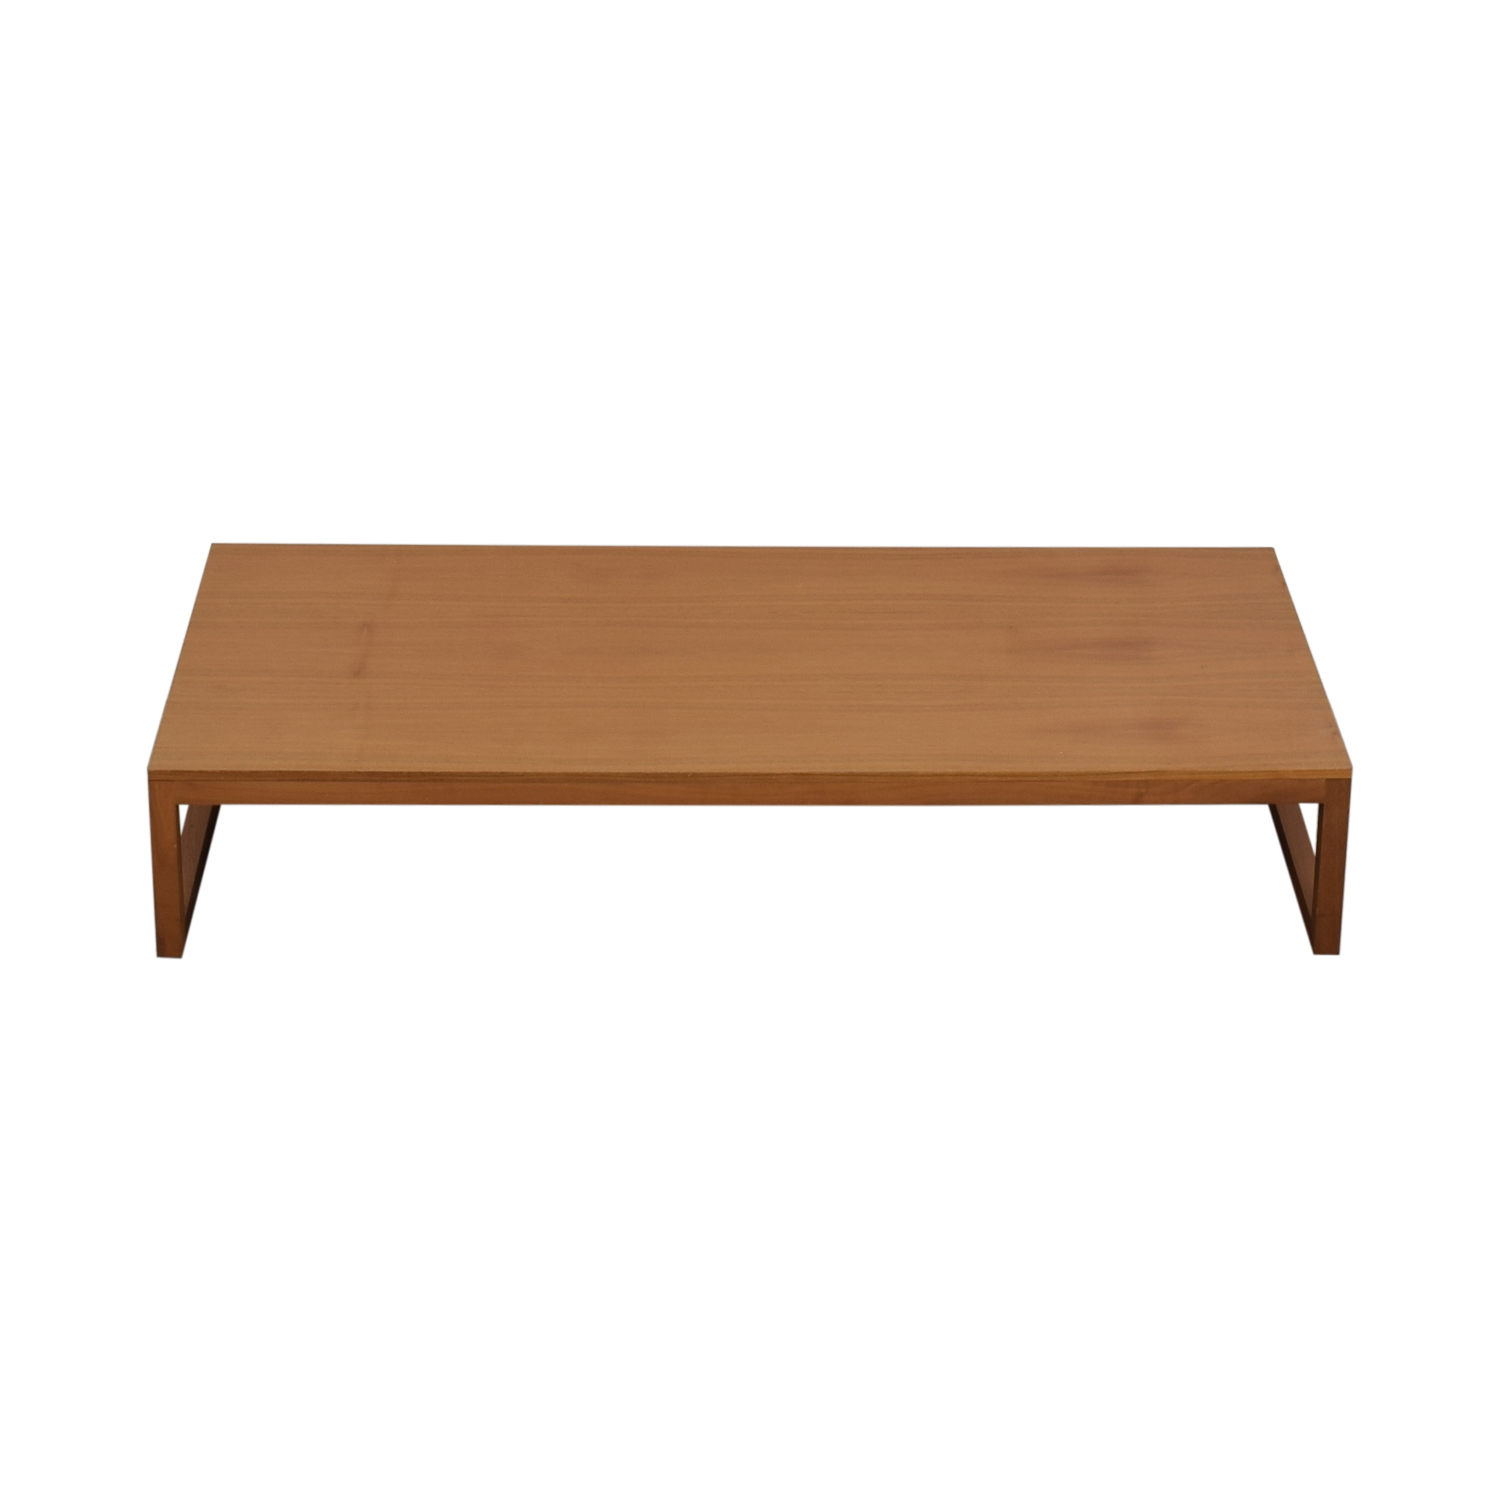 Design With Reach Wood Coffee Table sale